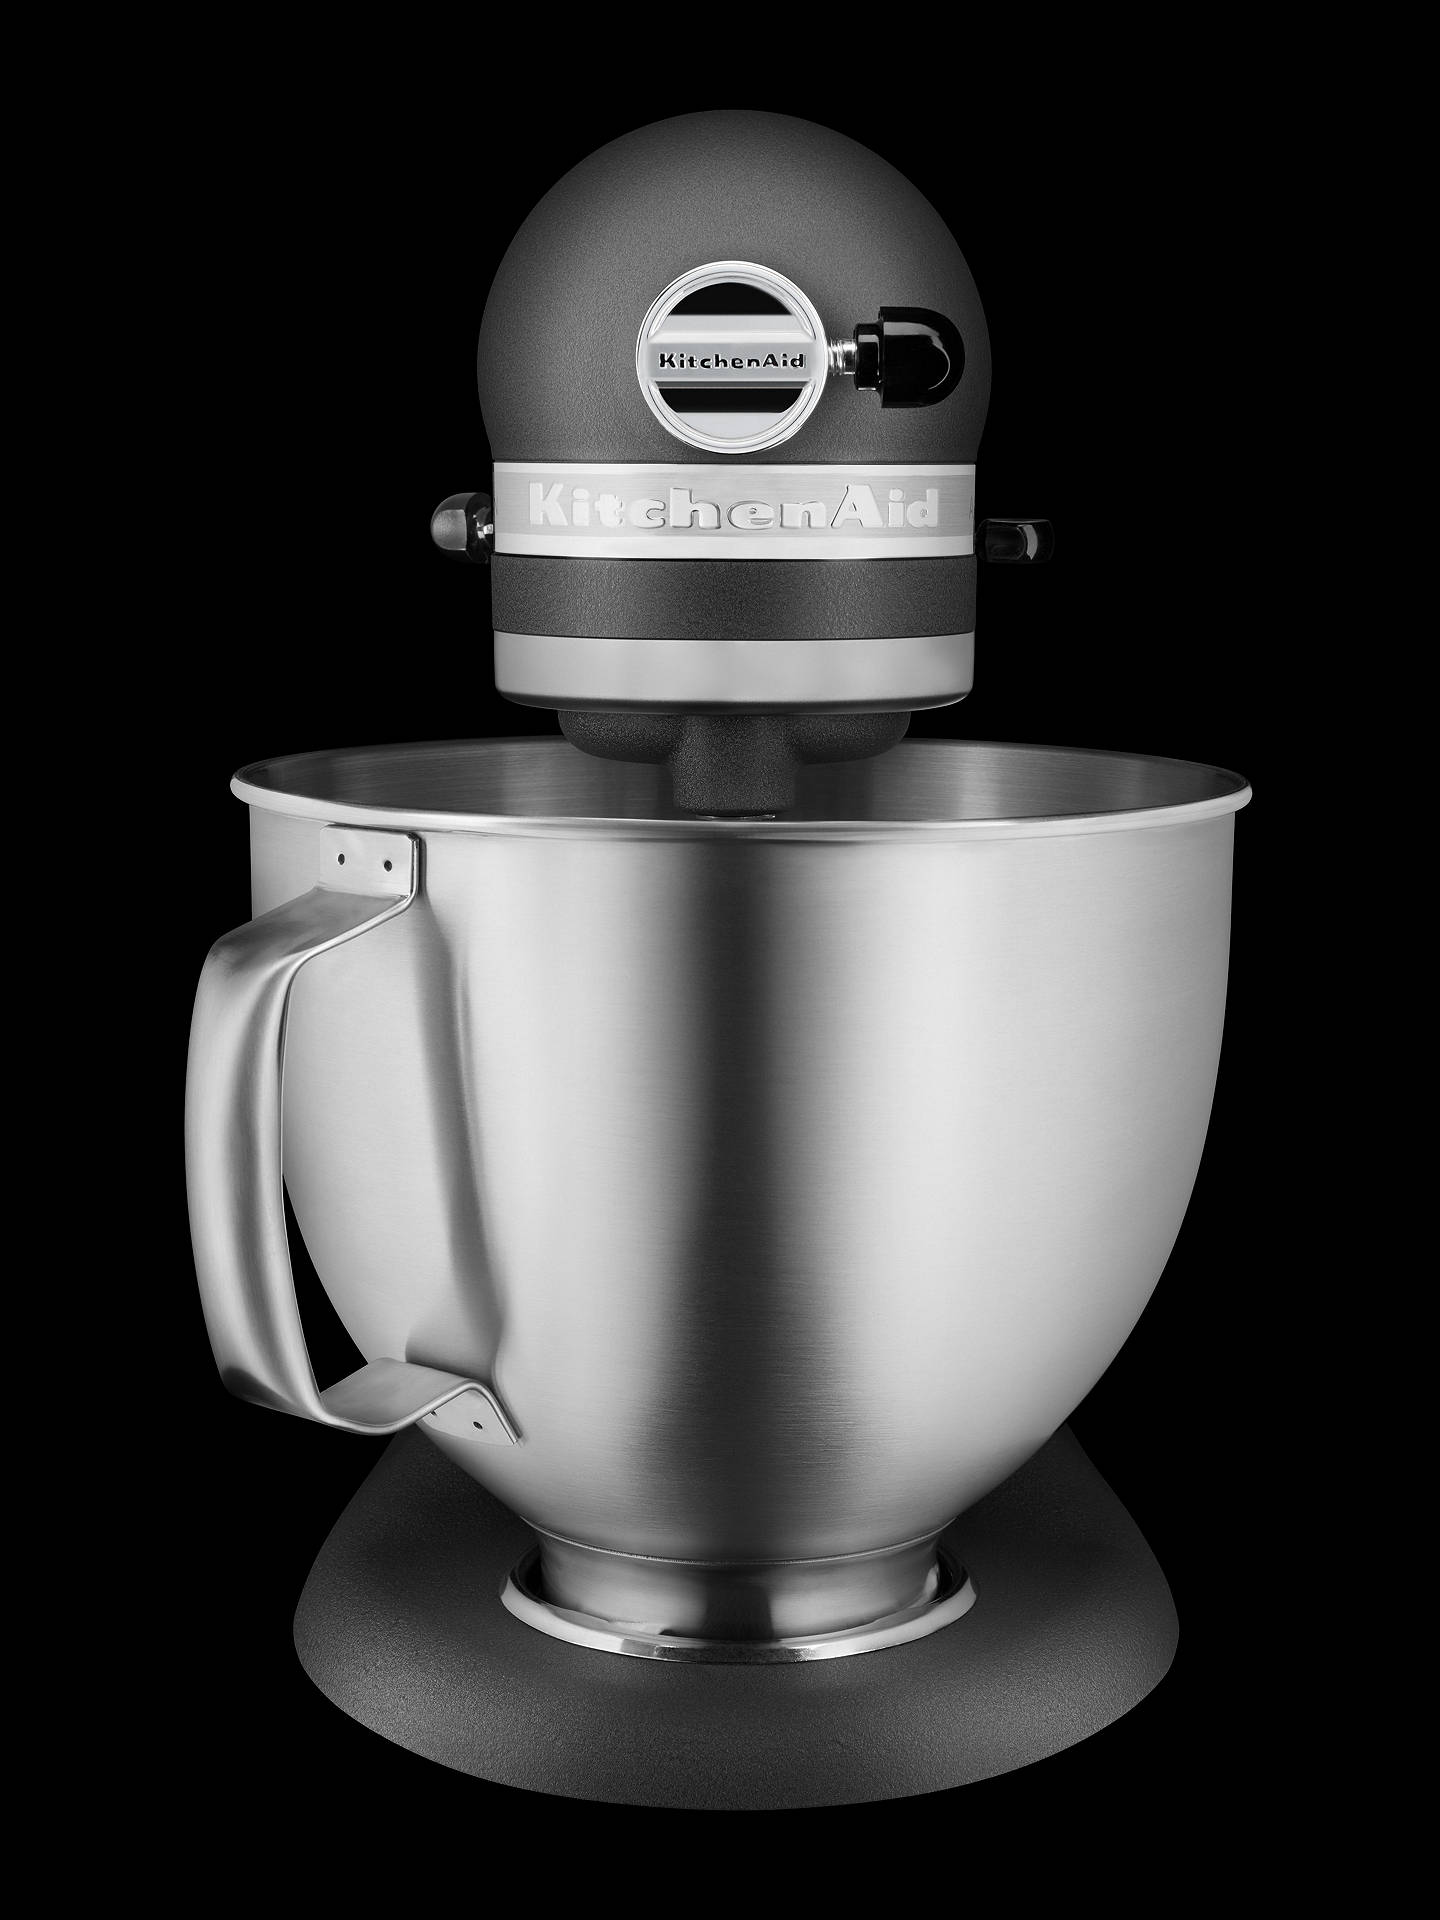 BuyKitchenAid 5KSM156BFP Artisan 4.8L Stand Mixer, Grey Online at johnlewis.com